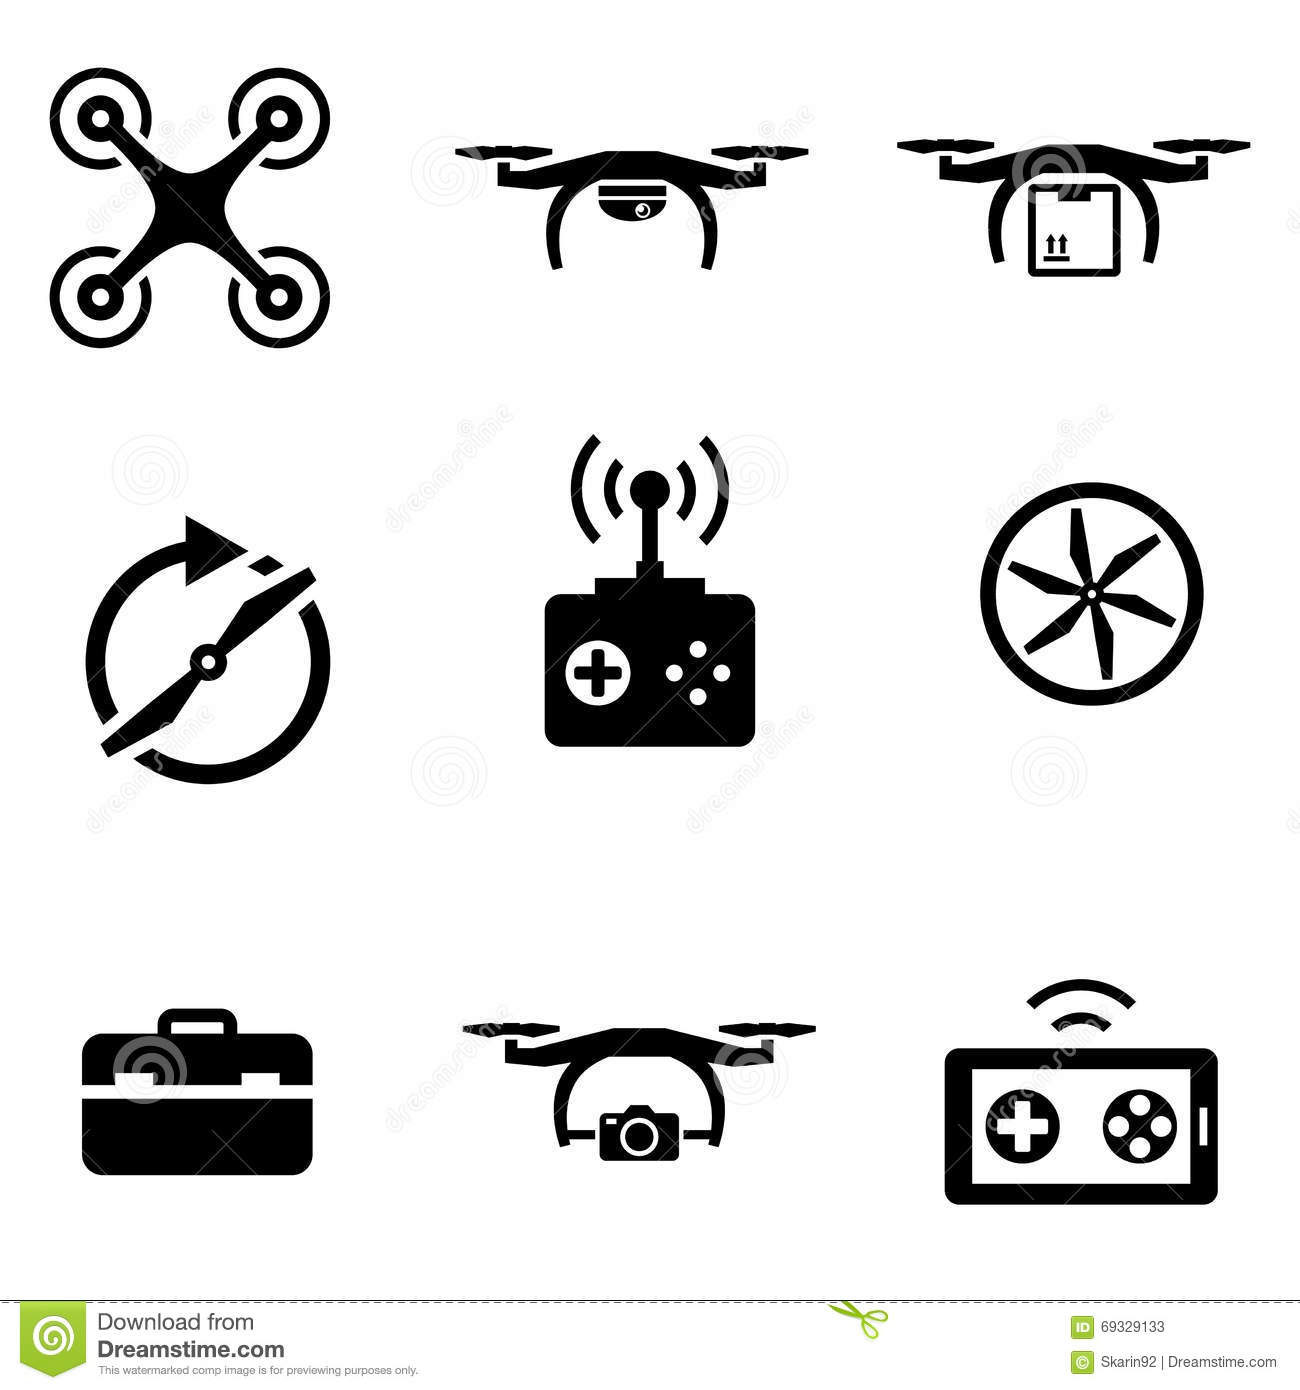 drones icon vector  battery  remote control flat isolated